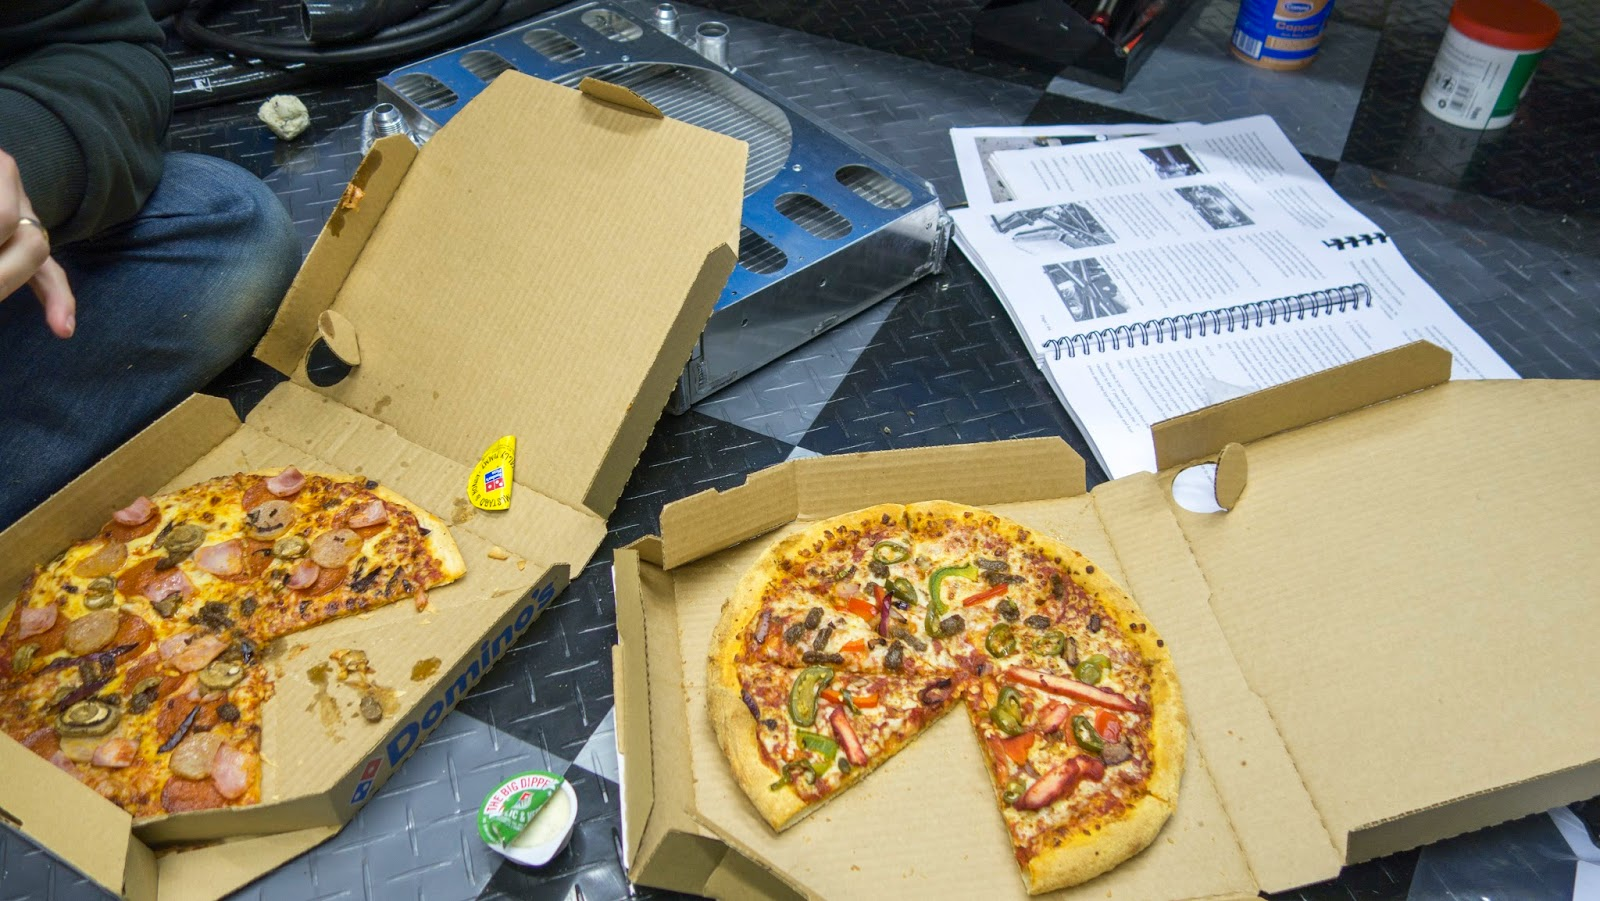 An energy boosting Domino's to gather our thoughts.